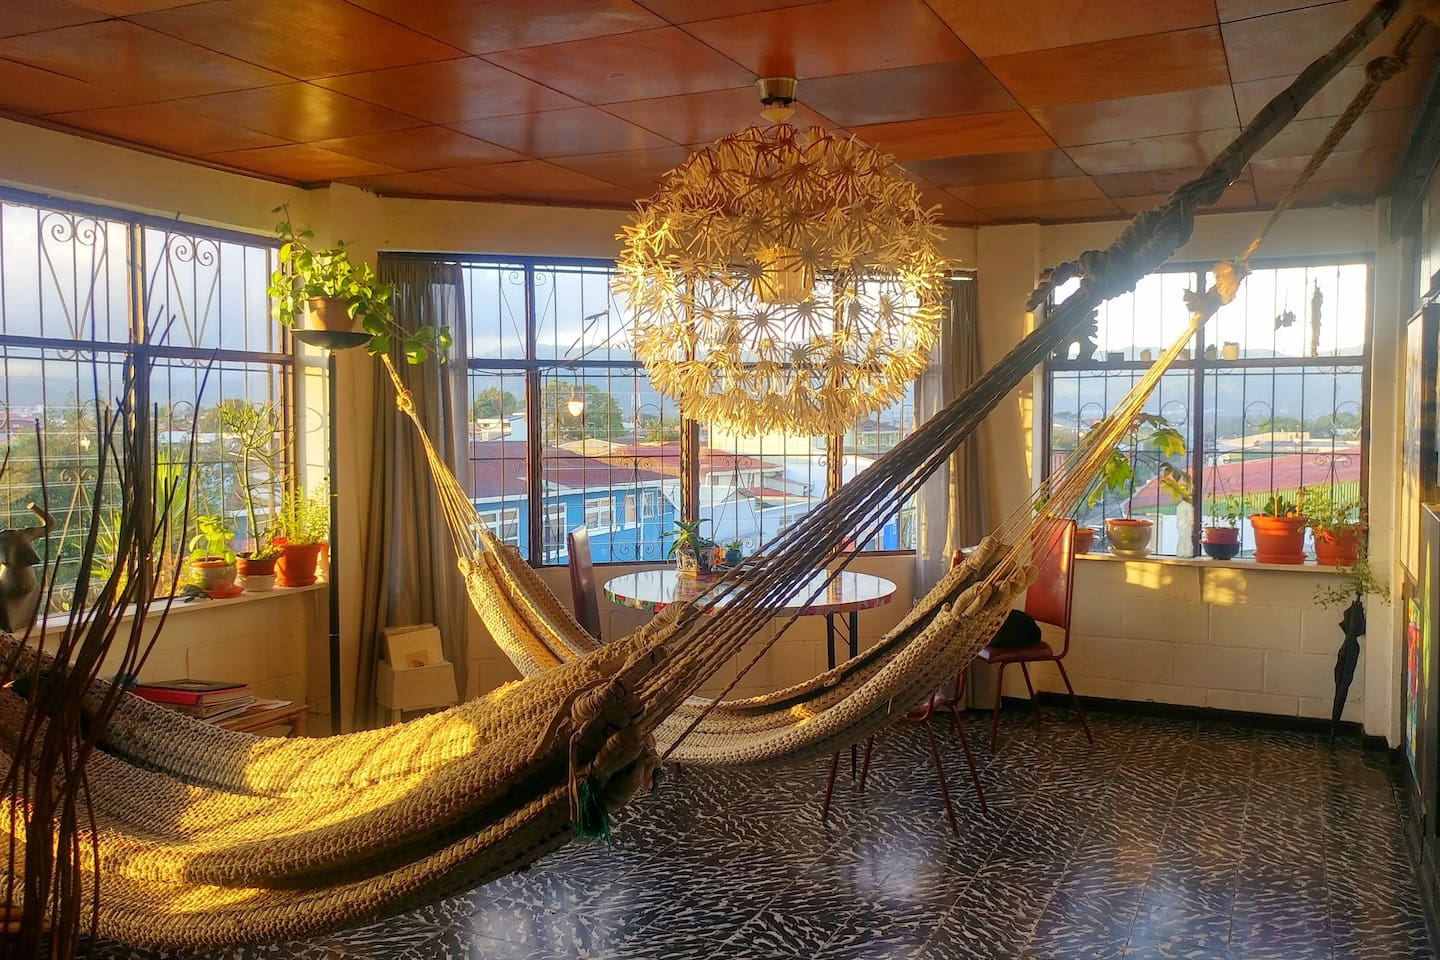 Feel free to lounge in the hammocks in the living area.